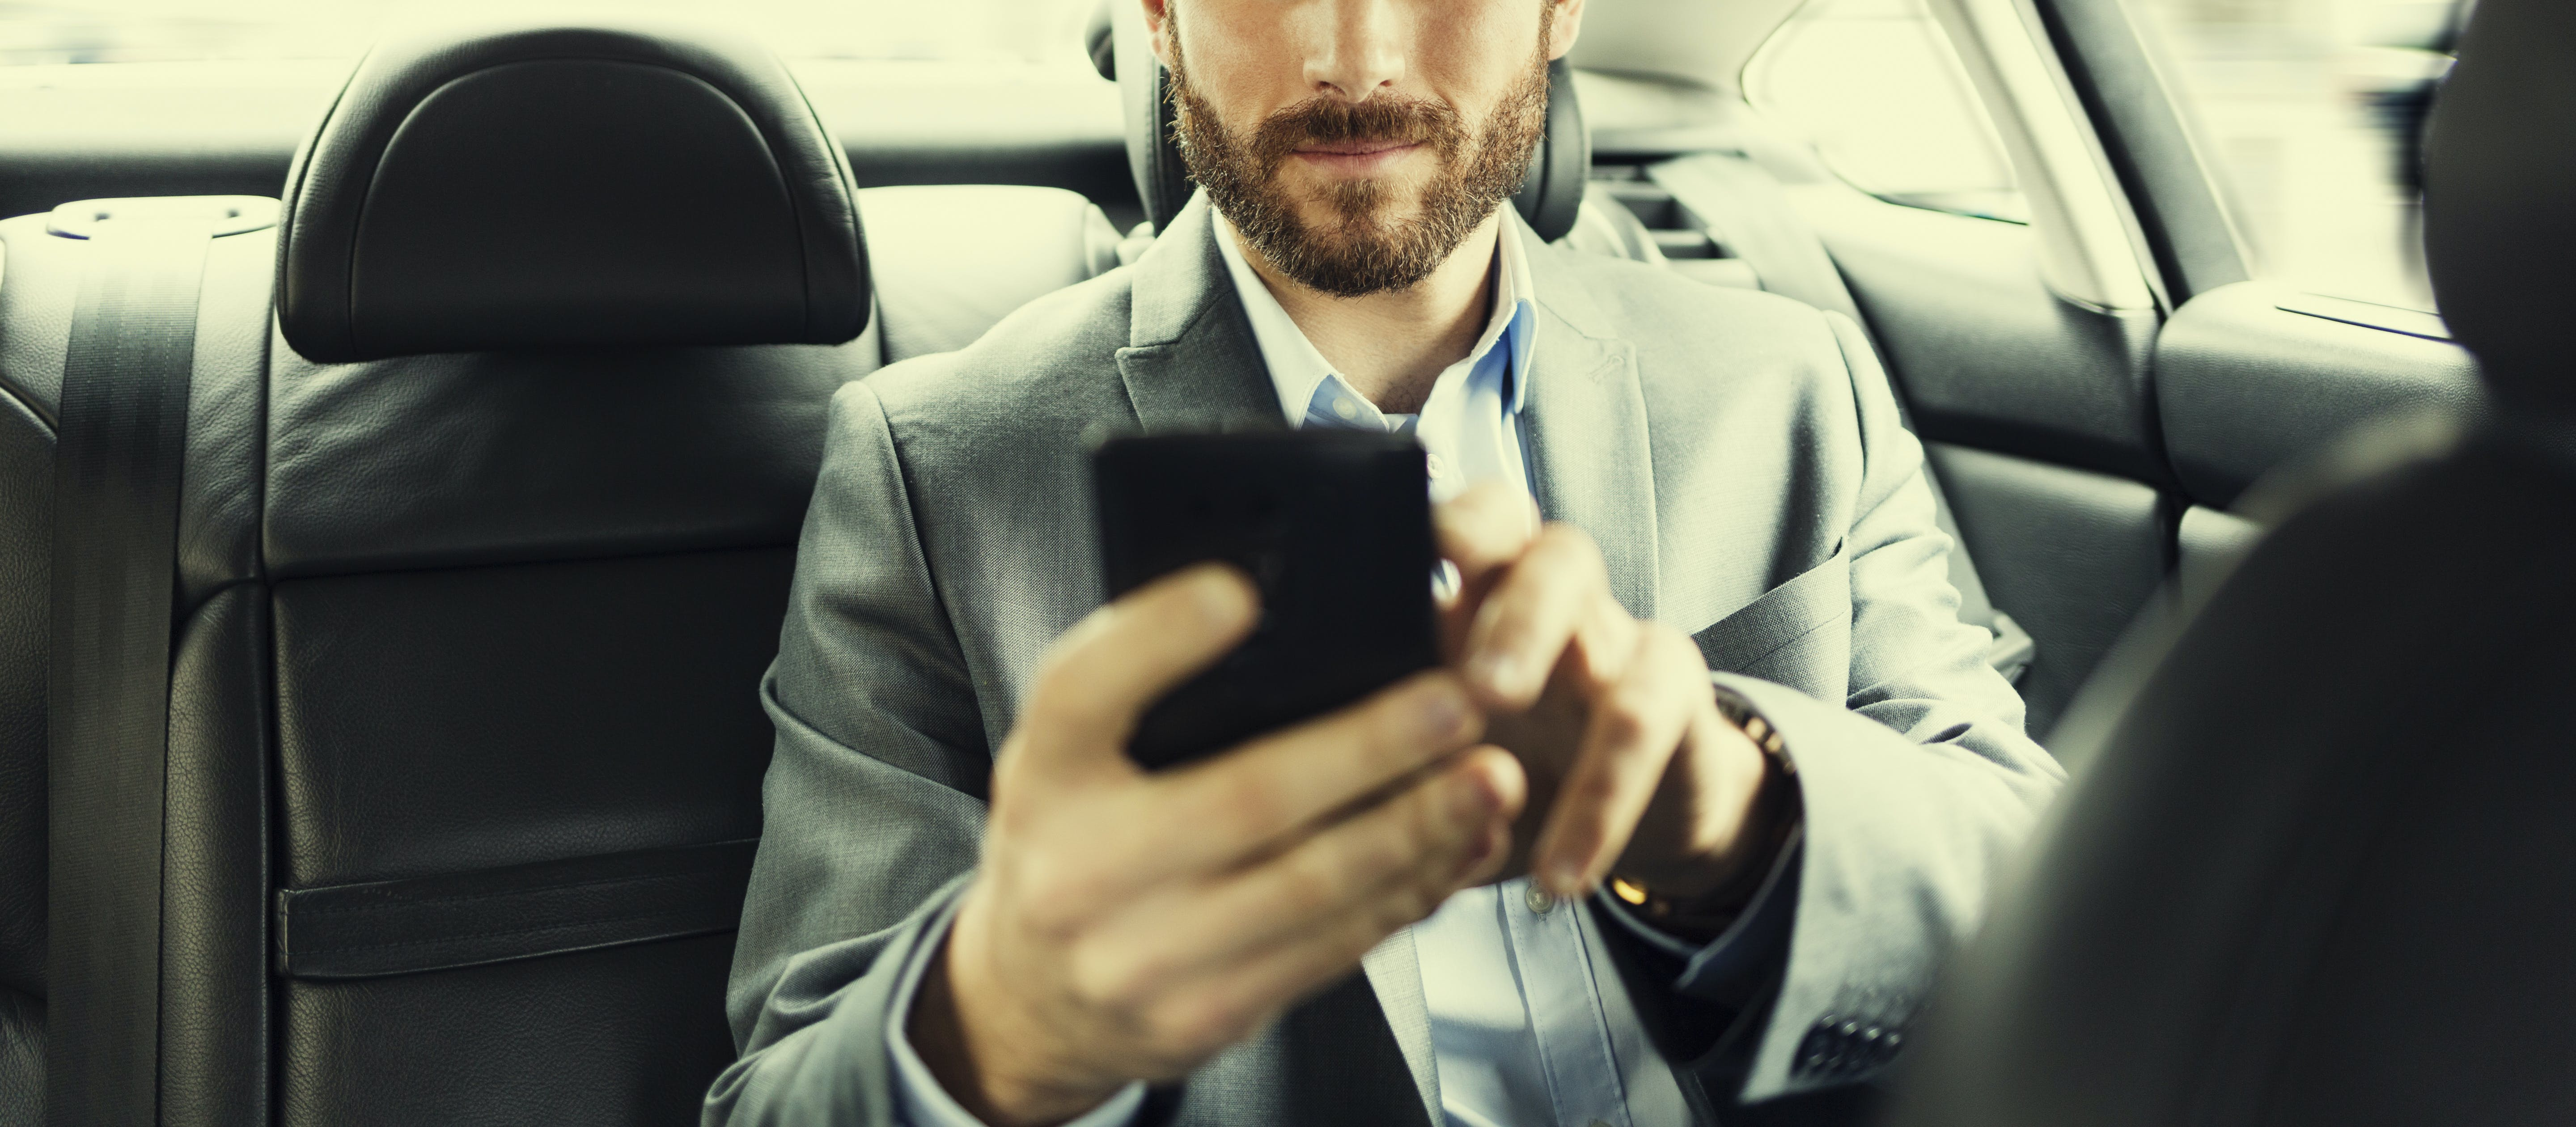 Vehicle Fleet Management in the Age of Technology